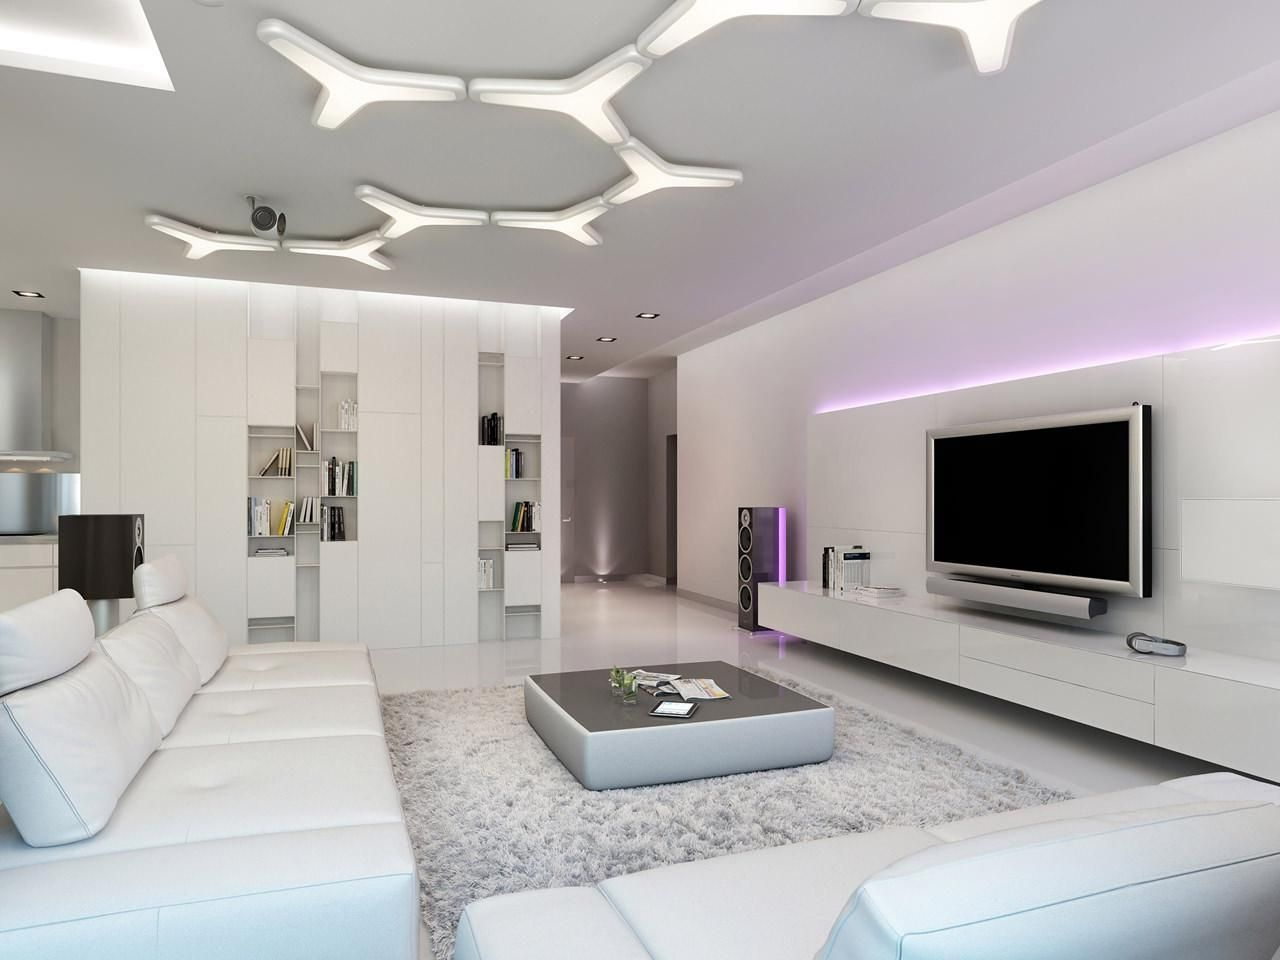 Stunning Ultra Modern Home Design In Living Room With Lighting In